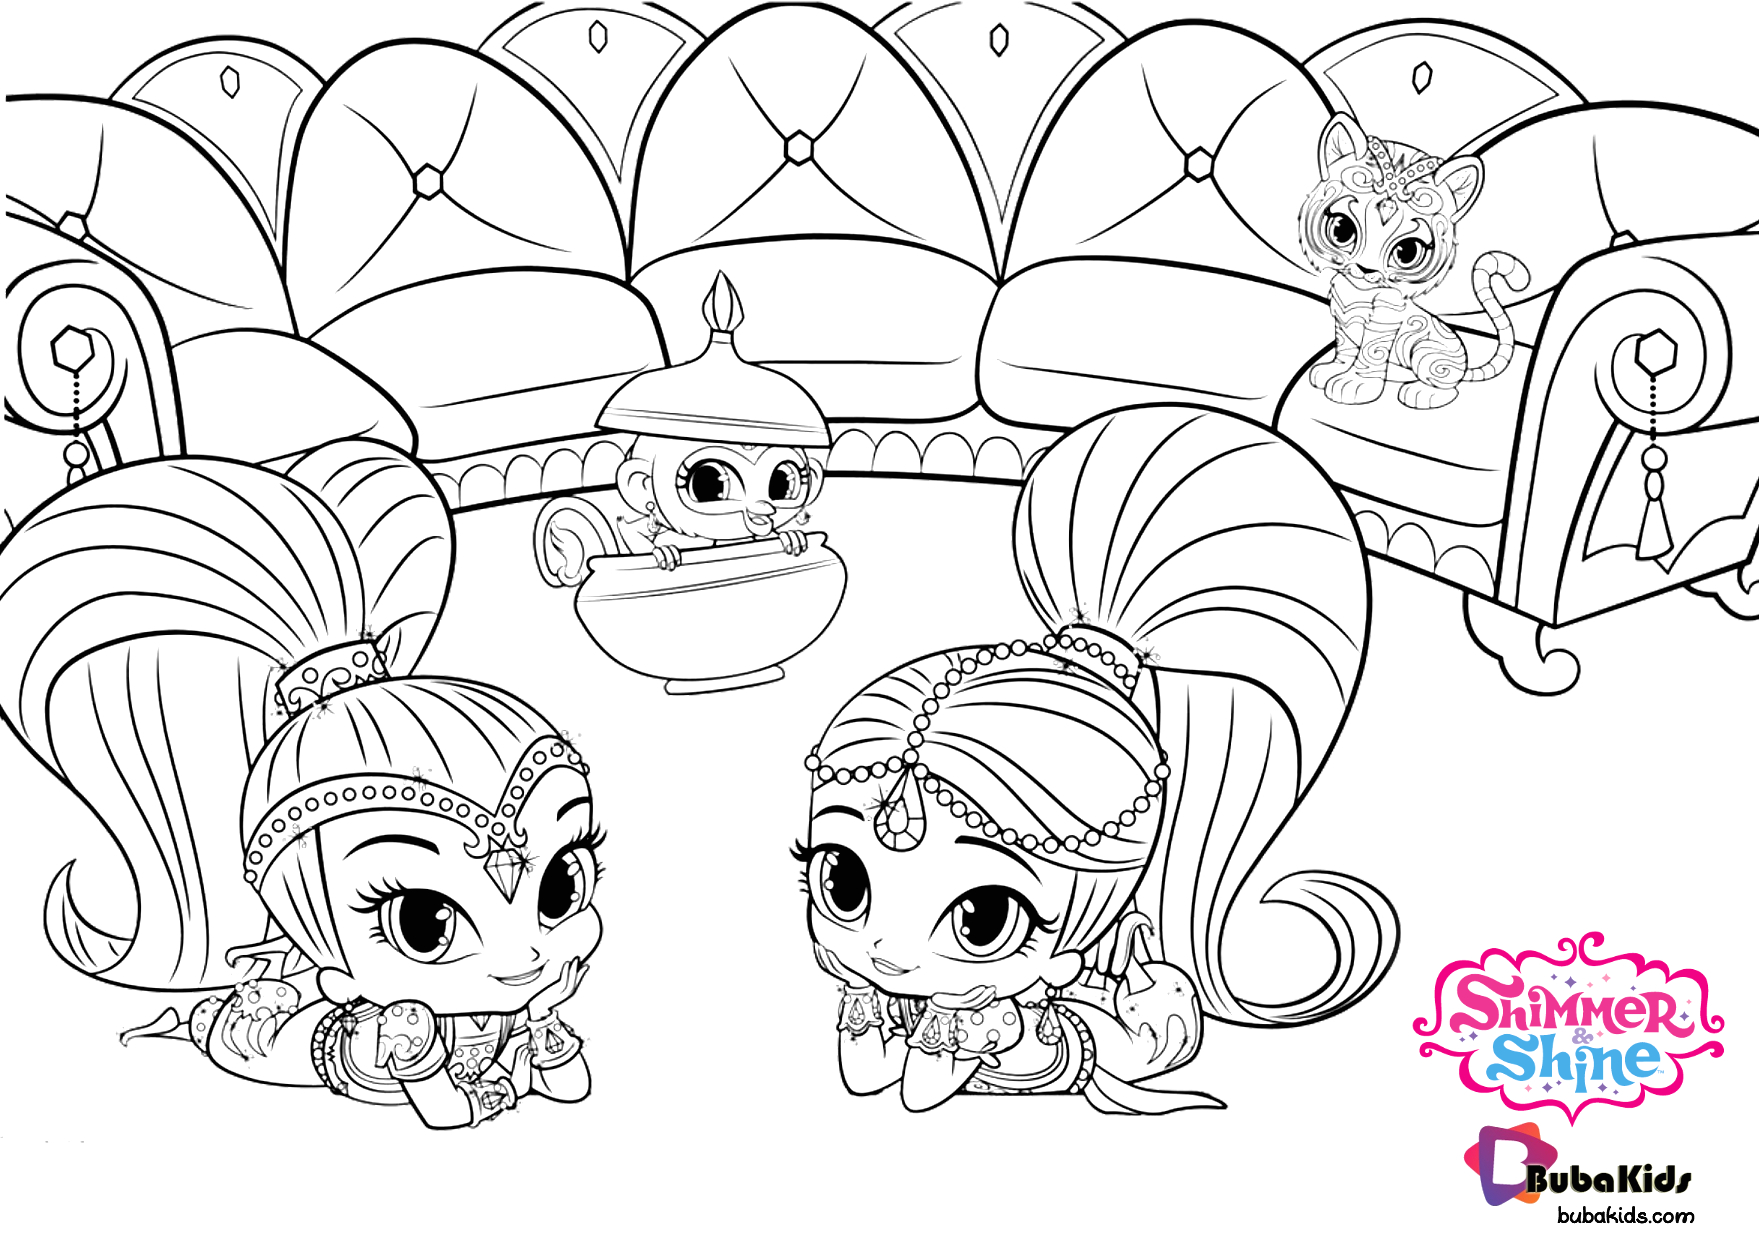 Nick Jr Shimmer and Shine Coloring Pages Nick Jr Shimmer and Shine Printable and Free Coloring Page